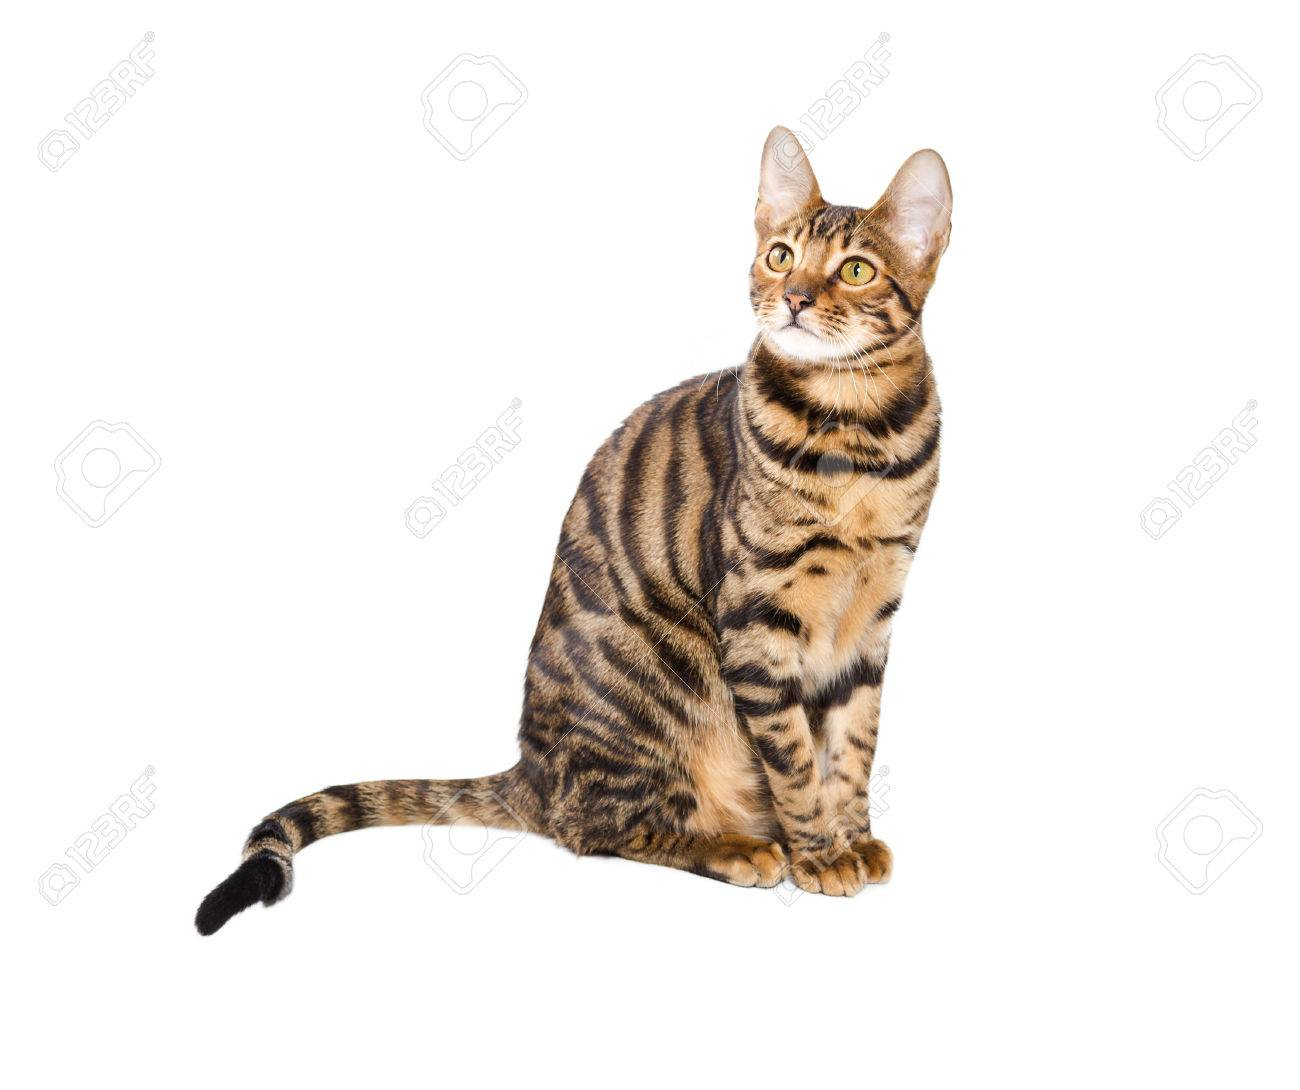 Cat Breed Toyger Isolated White Background Toy Tiger Stock